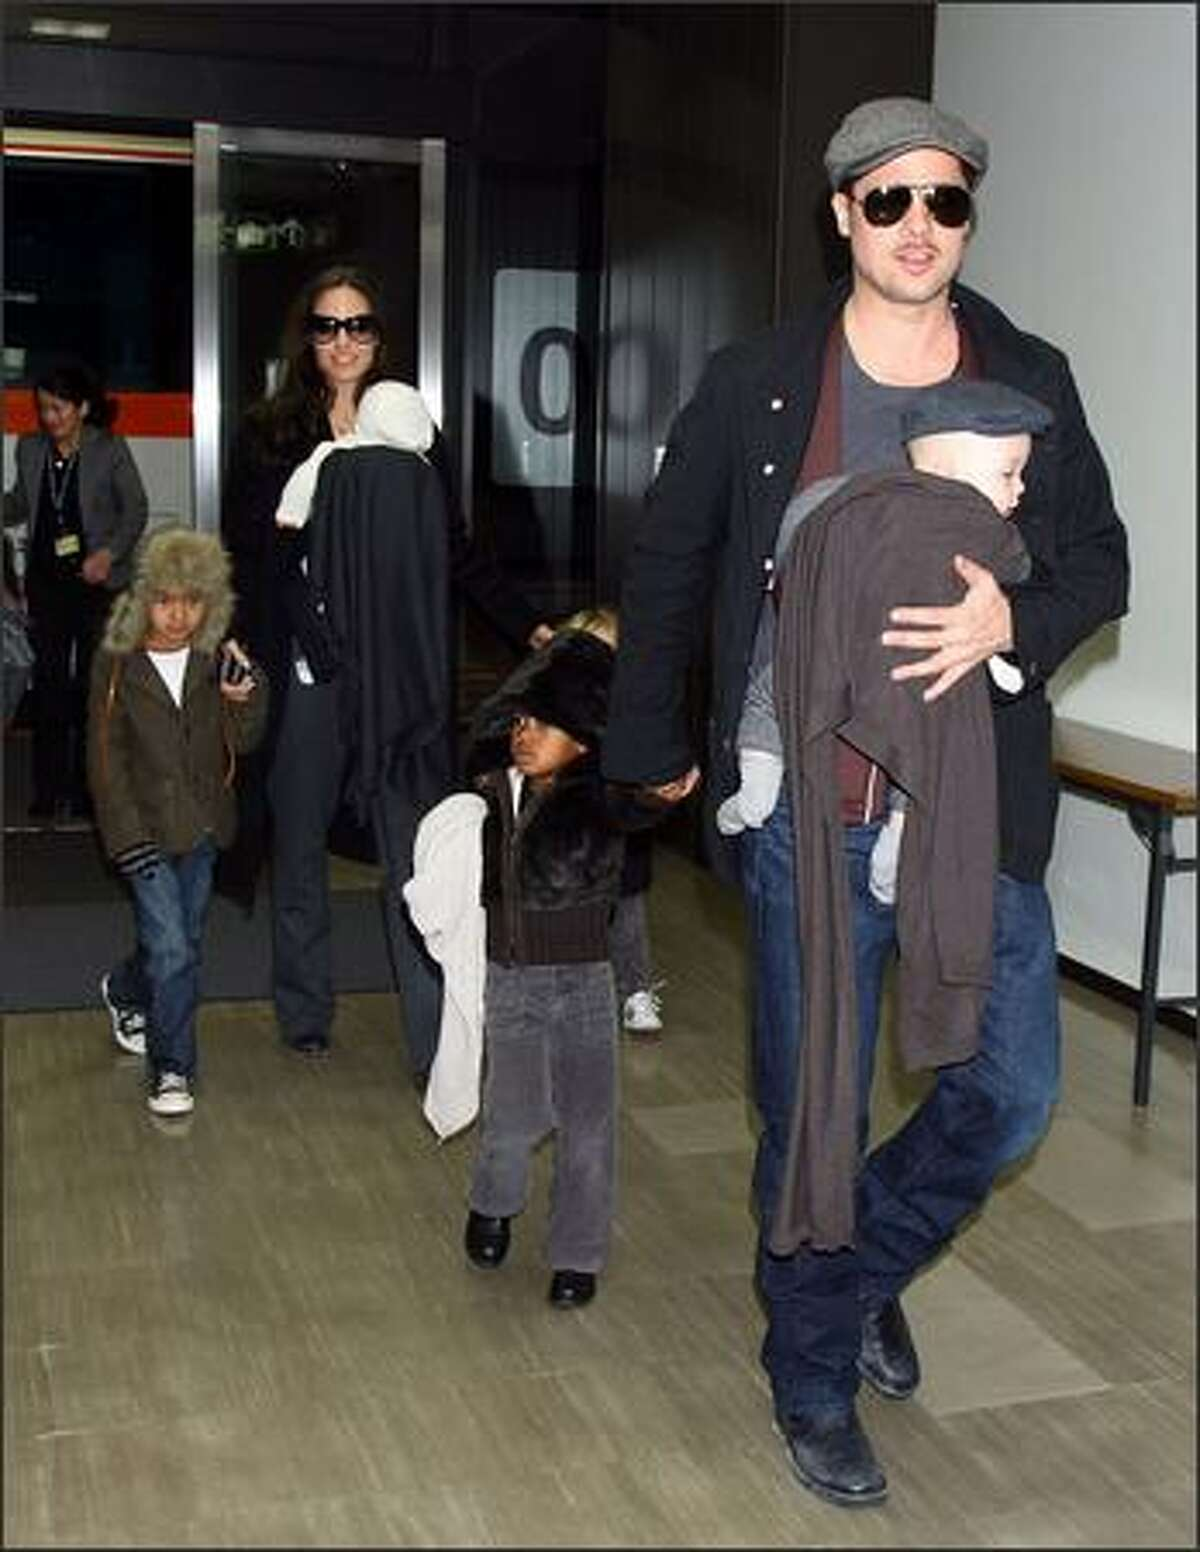 Actor Brad Pitt and Angelina Jolie arrive at Narita International Airport with their children (L to R) Maddox, Vivienne, Zahara and Knox in Narita, Chiba, Japan. Brad is visiting Japan to promote his film